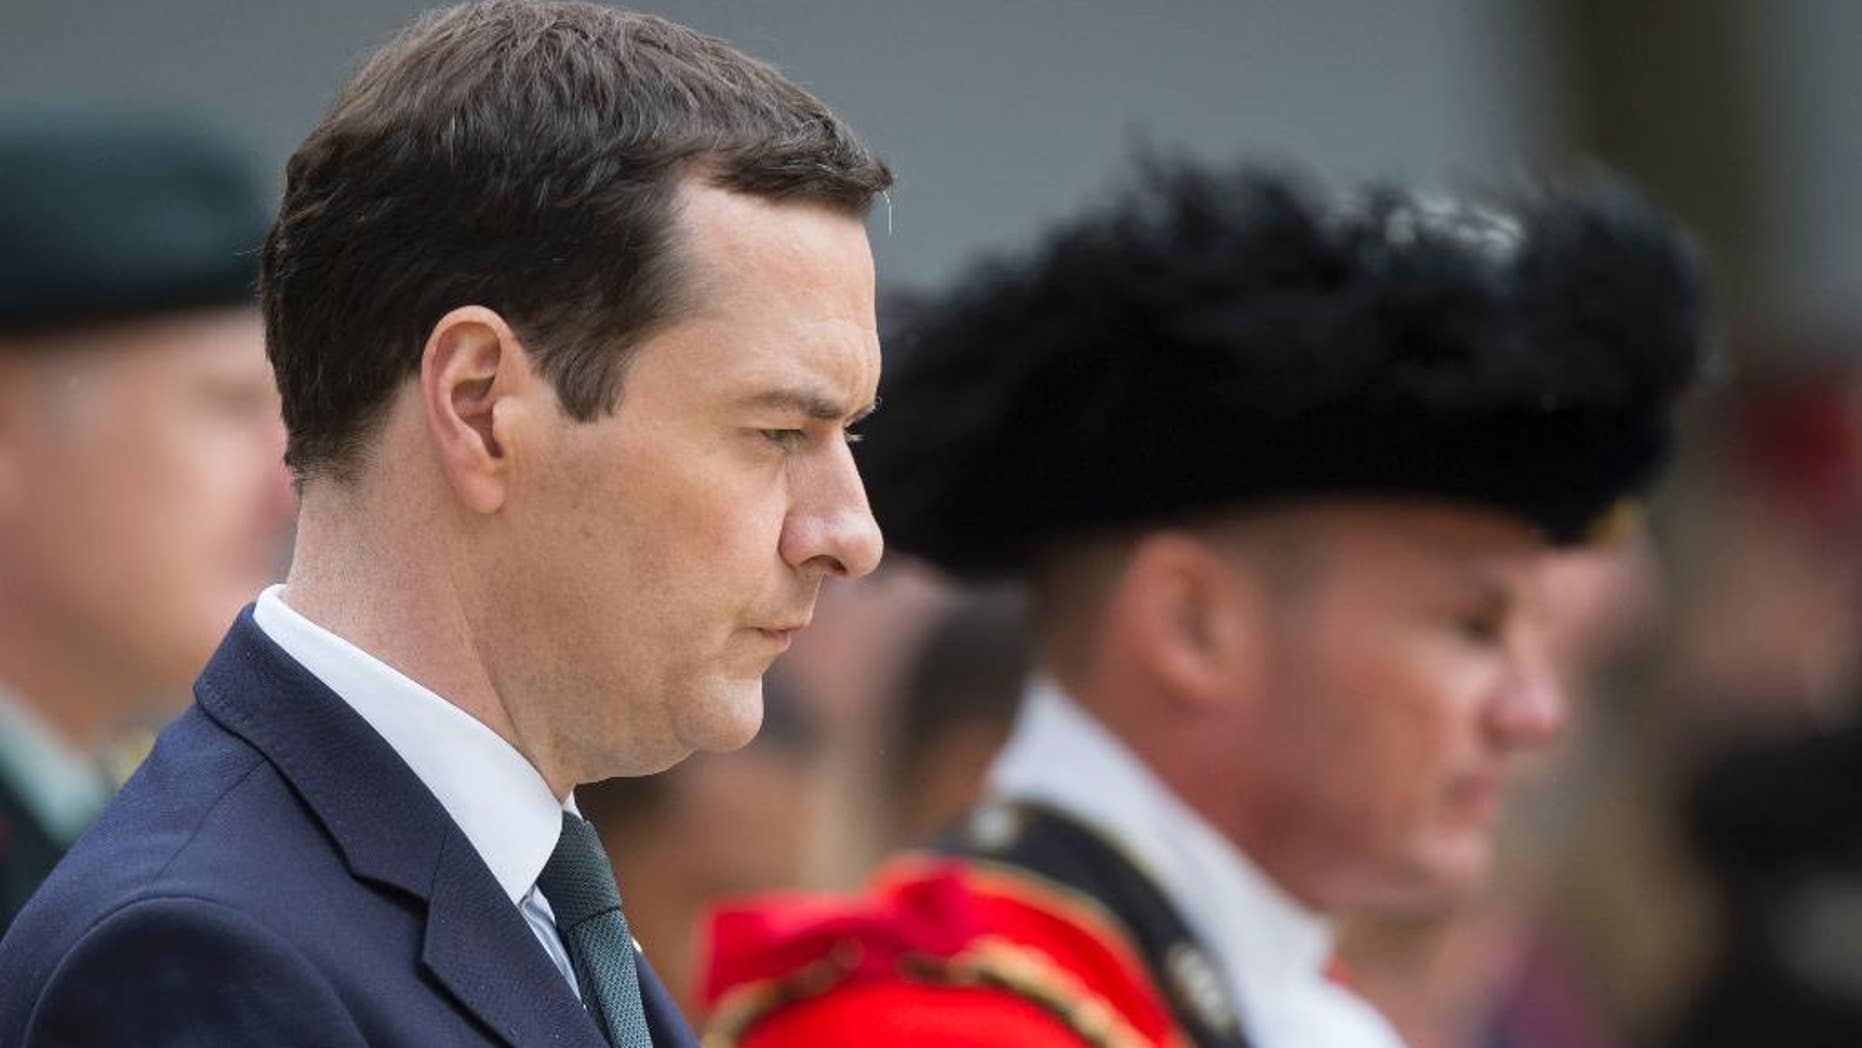 Britain's Chancellor of the Exchequer George Osborne prepares to lay a wealth at the Cenotaph in St Peter's Square, Manchester, England, where a commemoration is being held to mark the 100th anniversary of the start of the World War I battle of the Somme Friday July 1, 2016. Uncertainty about the country's future ties with the EU is weighing heavily on the British economy, prompting Treasury chief George Osborne to announce he was abandoning the government's long-held goal of achieving a budget surplus by 2020. (Danny Lawson/PA via AP)